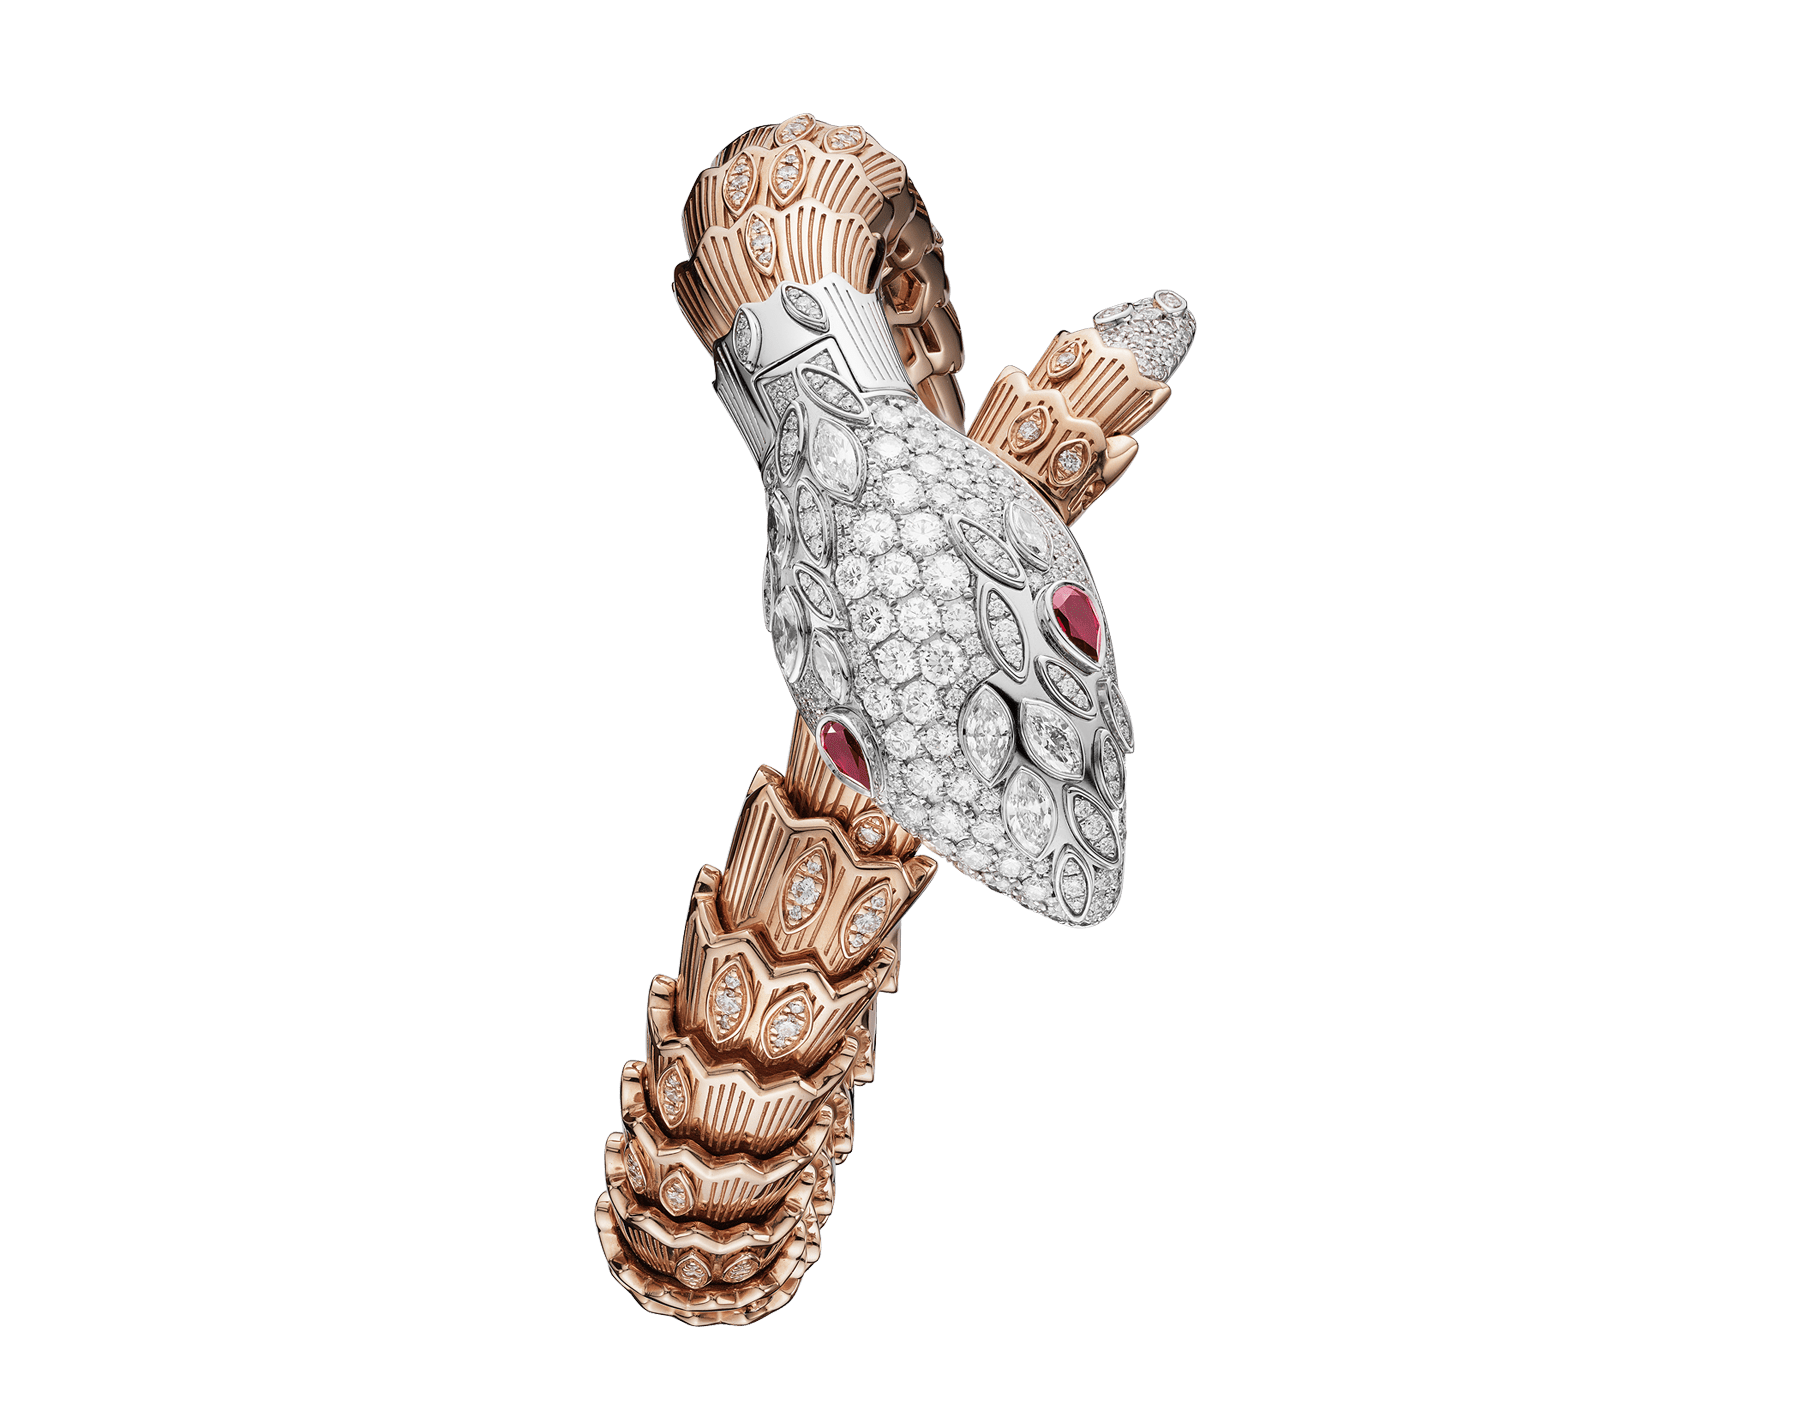 Serpenti Secret Watch with 18 kt white gold head set with brilliant cut and marquise cut diamonds and ruby eyes, 18 kt white gold case, 18 kt white gold dial set with brilliant cut diamonds, single spiral bracelet in 18 kt rose and white gold, set with brilliant cut diamonds. 102239 image 1